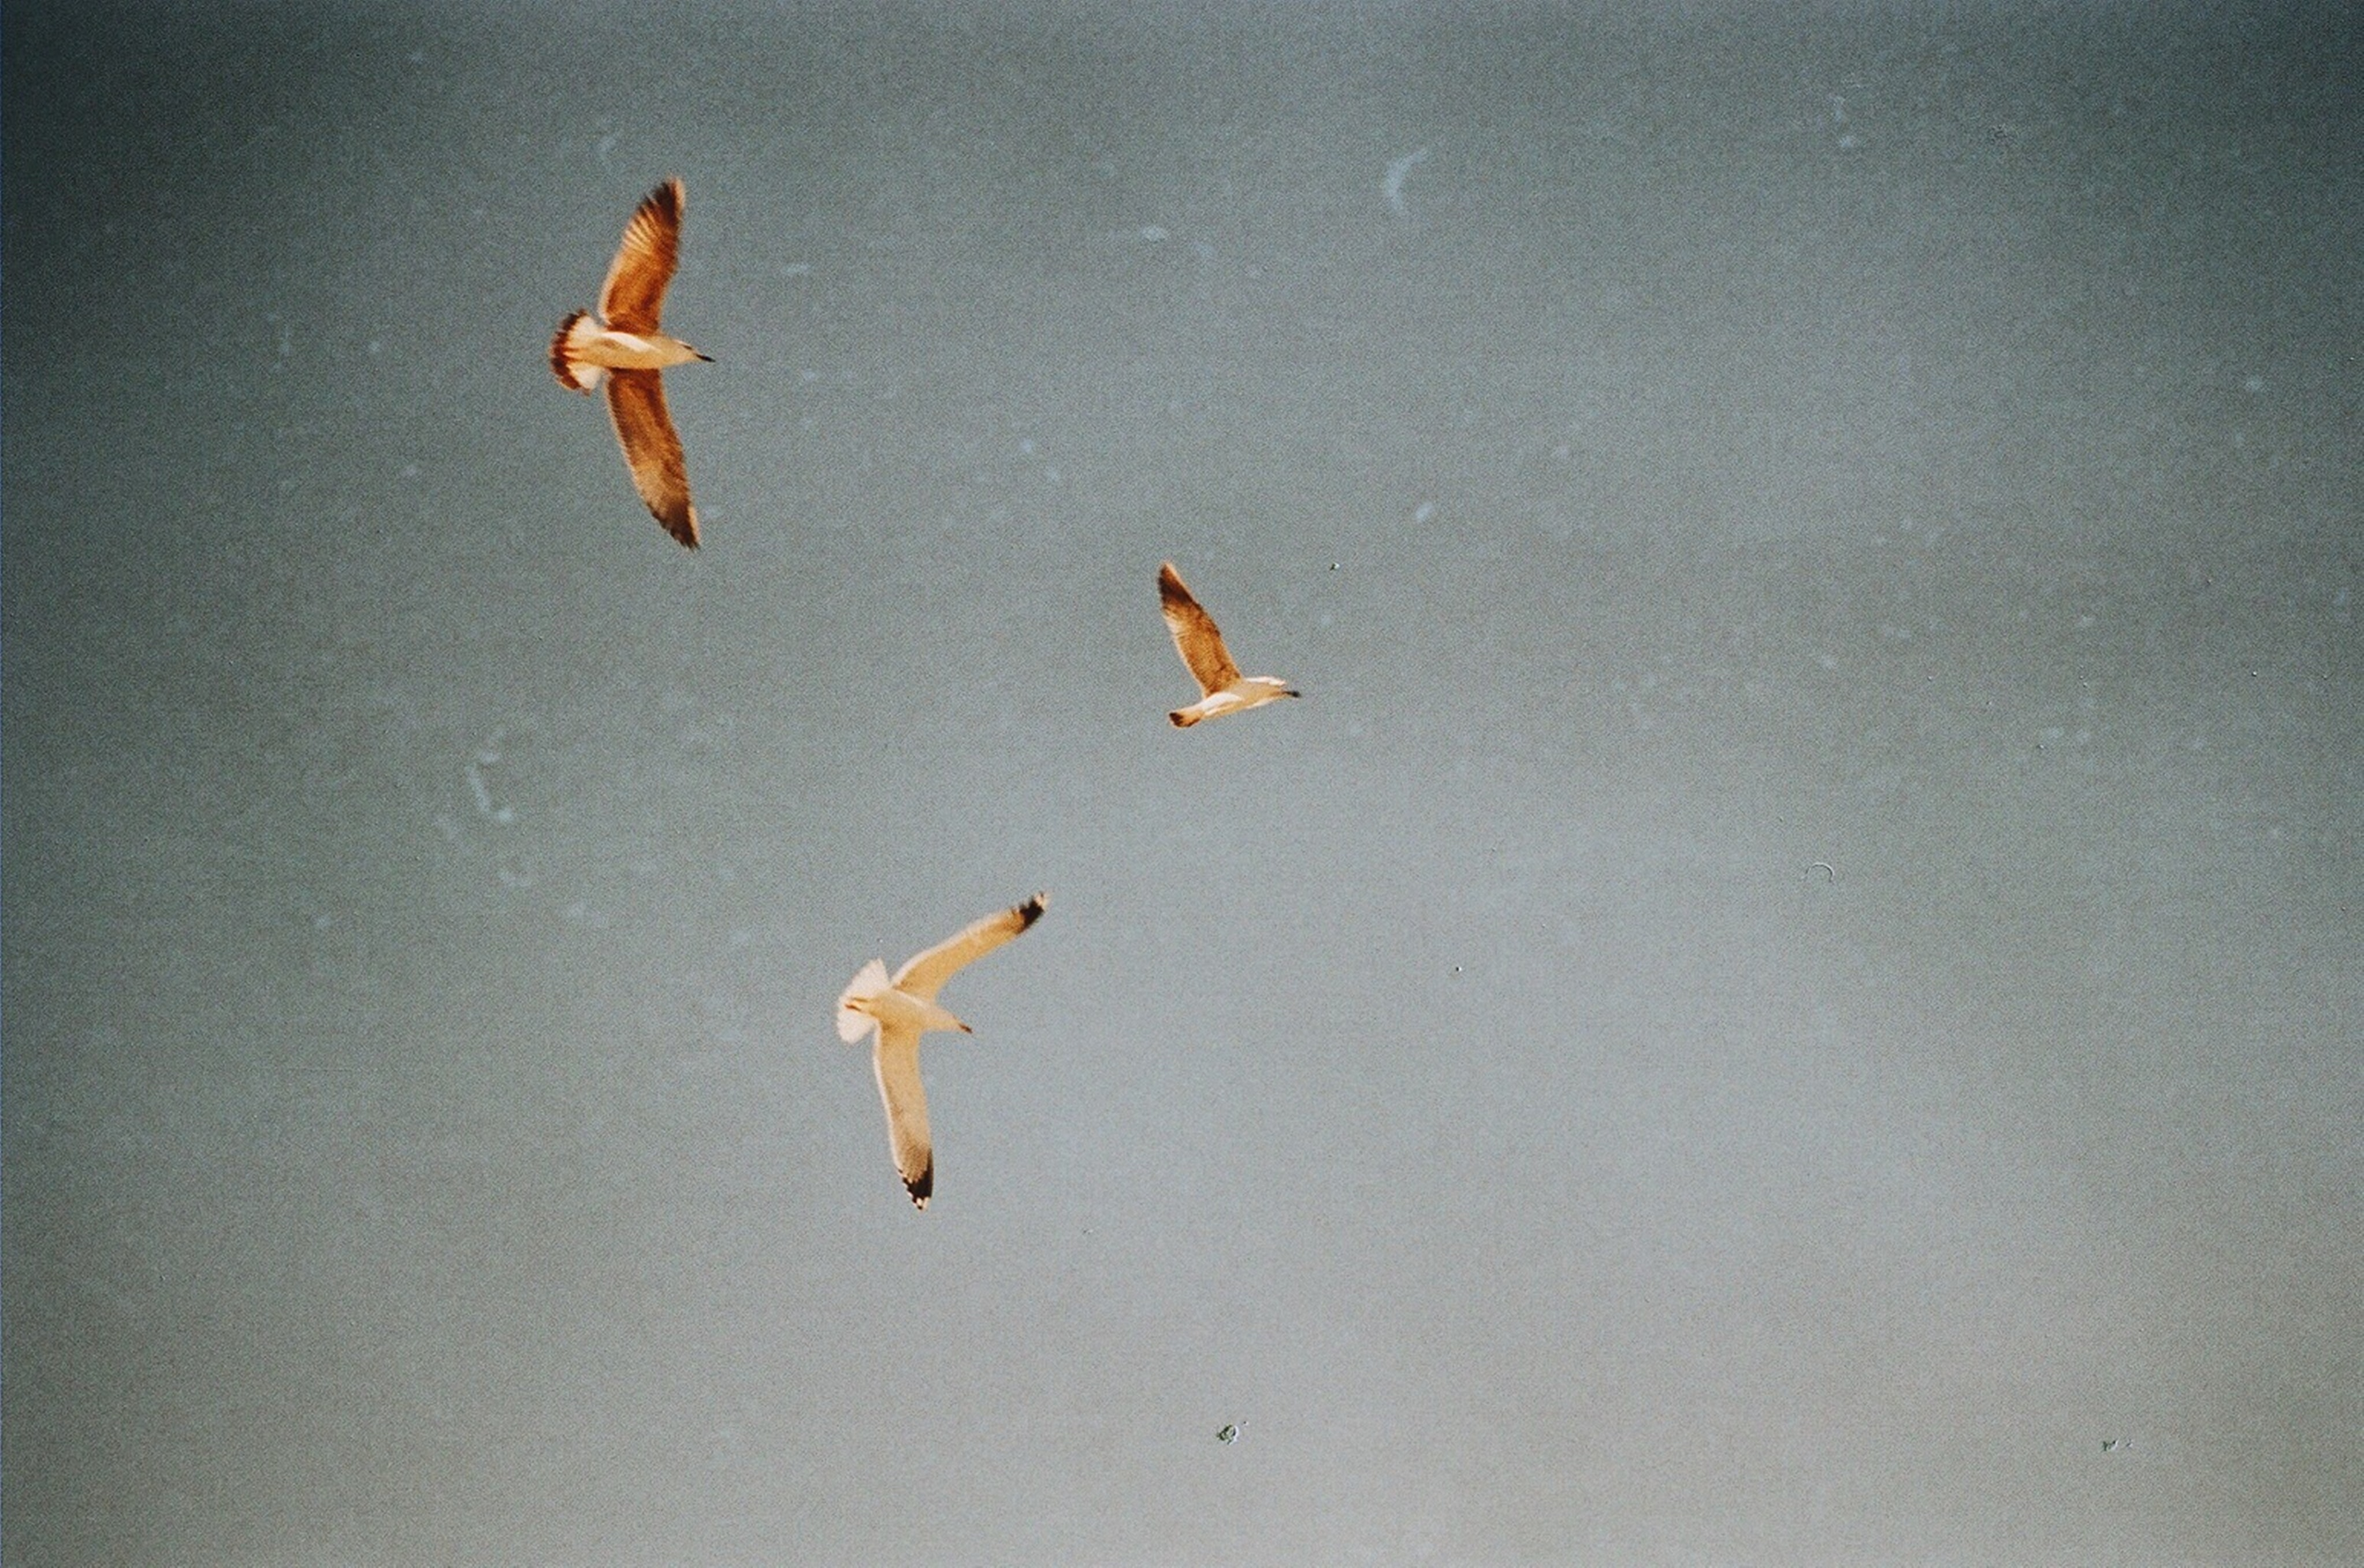 three white-and-brown birds flying on air